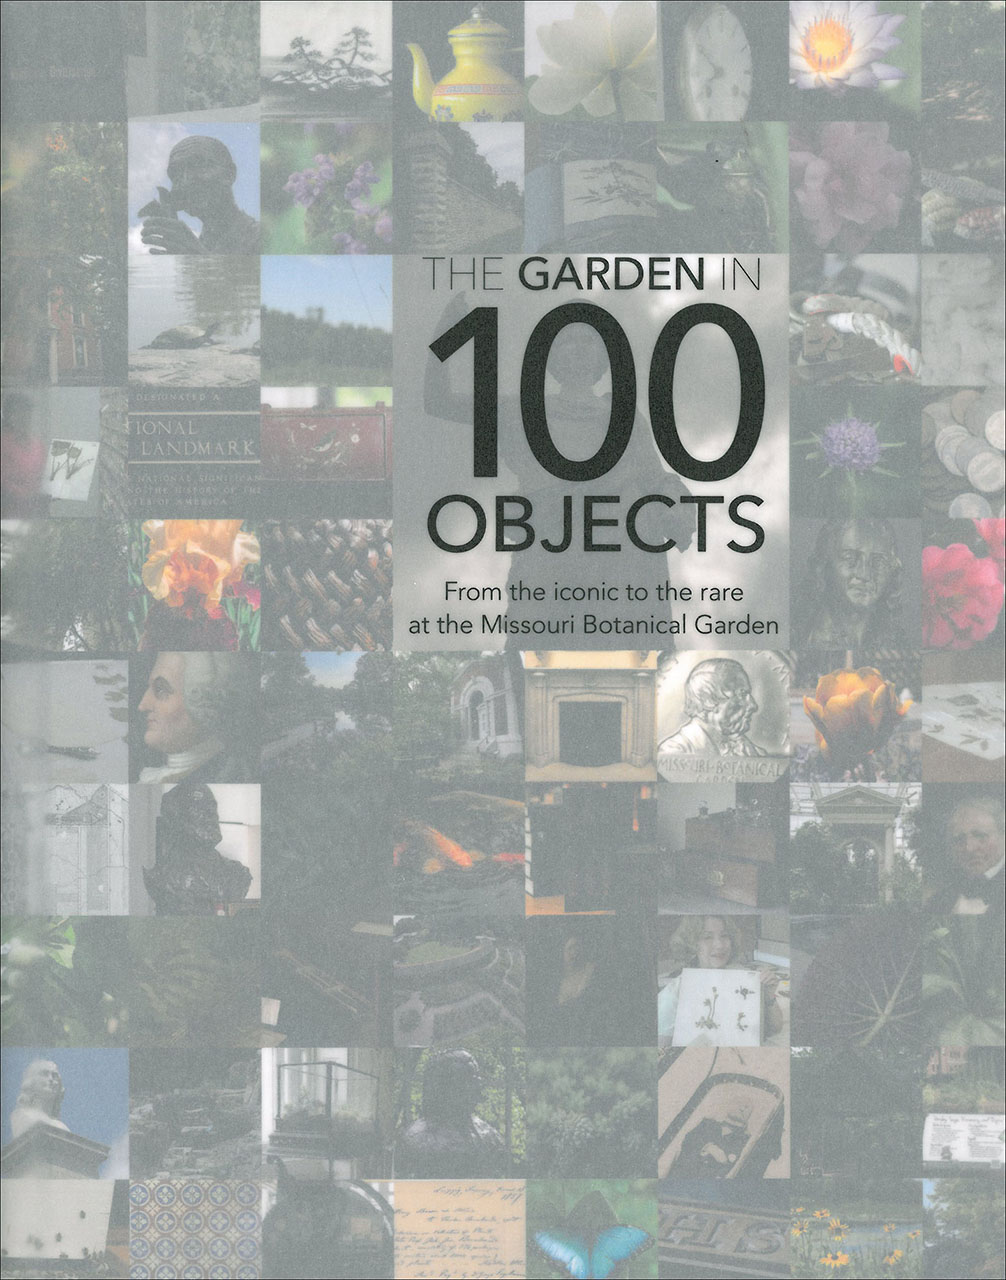 Garden in 100 Objects: From the Iconic to the Rare at the Missouri Botanical Garden